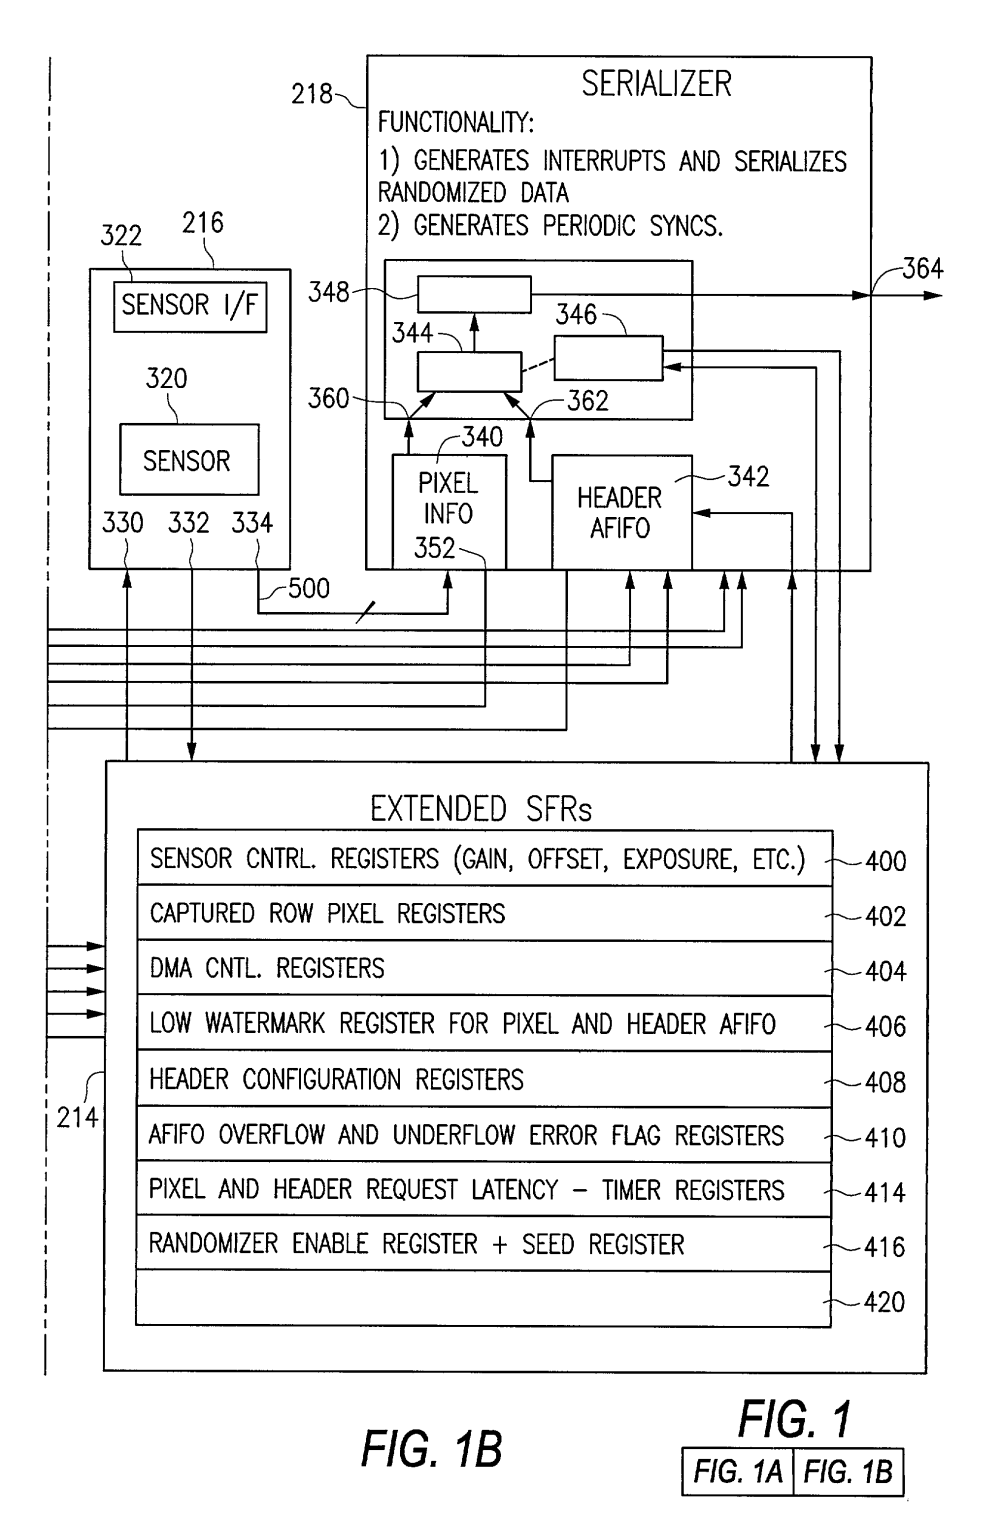 medium resolution of us20030210334a1 20031113 d00002 gentex 453 wiring diagram gentex 455 wiring diagram u2022 free wiring gentex